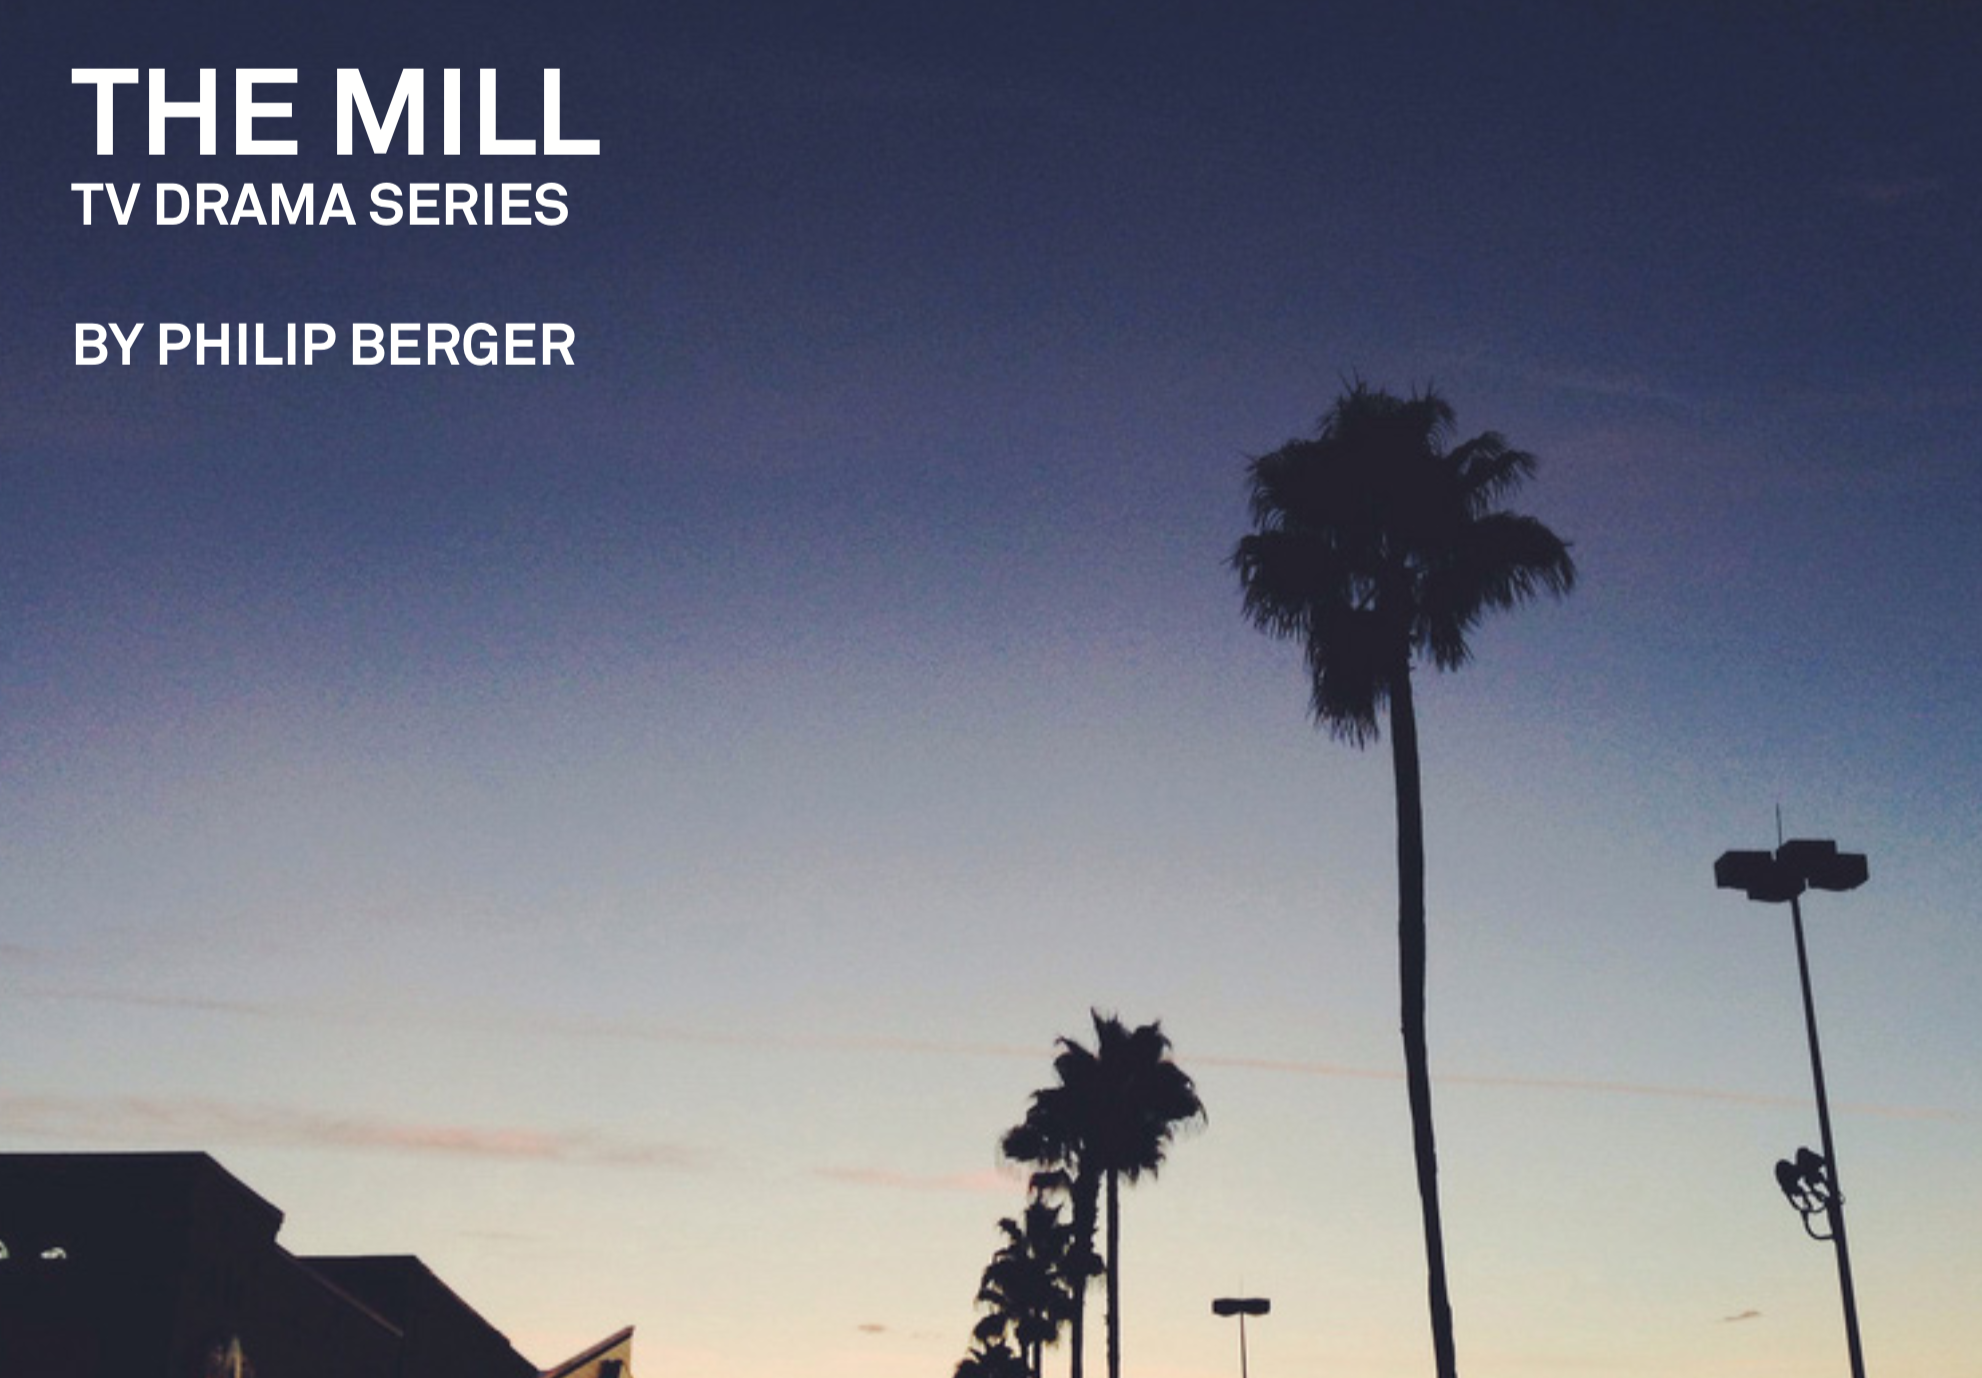 The Mill - TV Series: Set in Orlando in the early to mid aughts, follows rise and fall of four families, and the crossroads between the familial suburbia and the underbelly of a bizarre, tropical crime world. Pill mills, tourist prostitution rings, and property scams - as Florida as it gets.